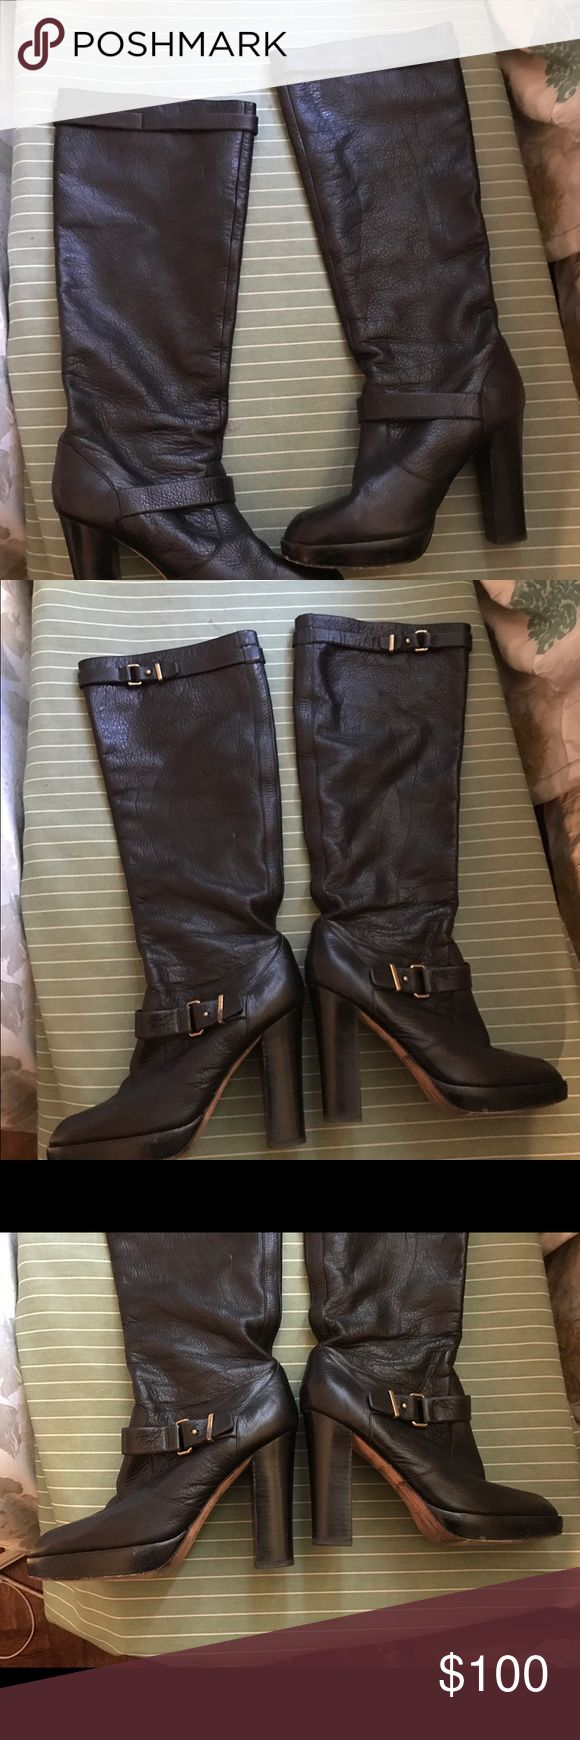 Selling this Coach Black Pebbled leather boots - size 10 B on Poshmark! My username is: hermione123. #shopmycloset #poshmark #fashion #shopping #style #forsale #Coach #Shoes